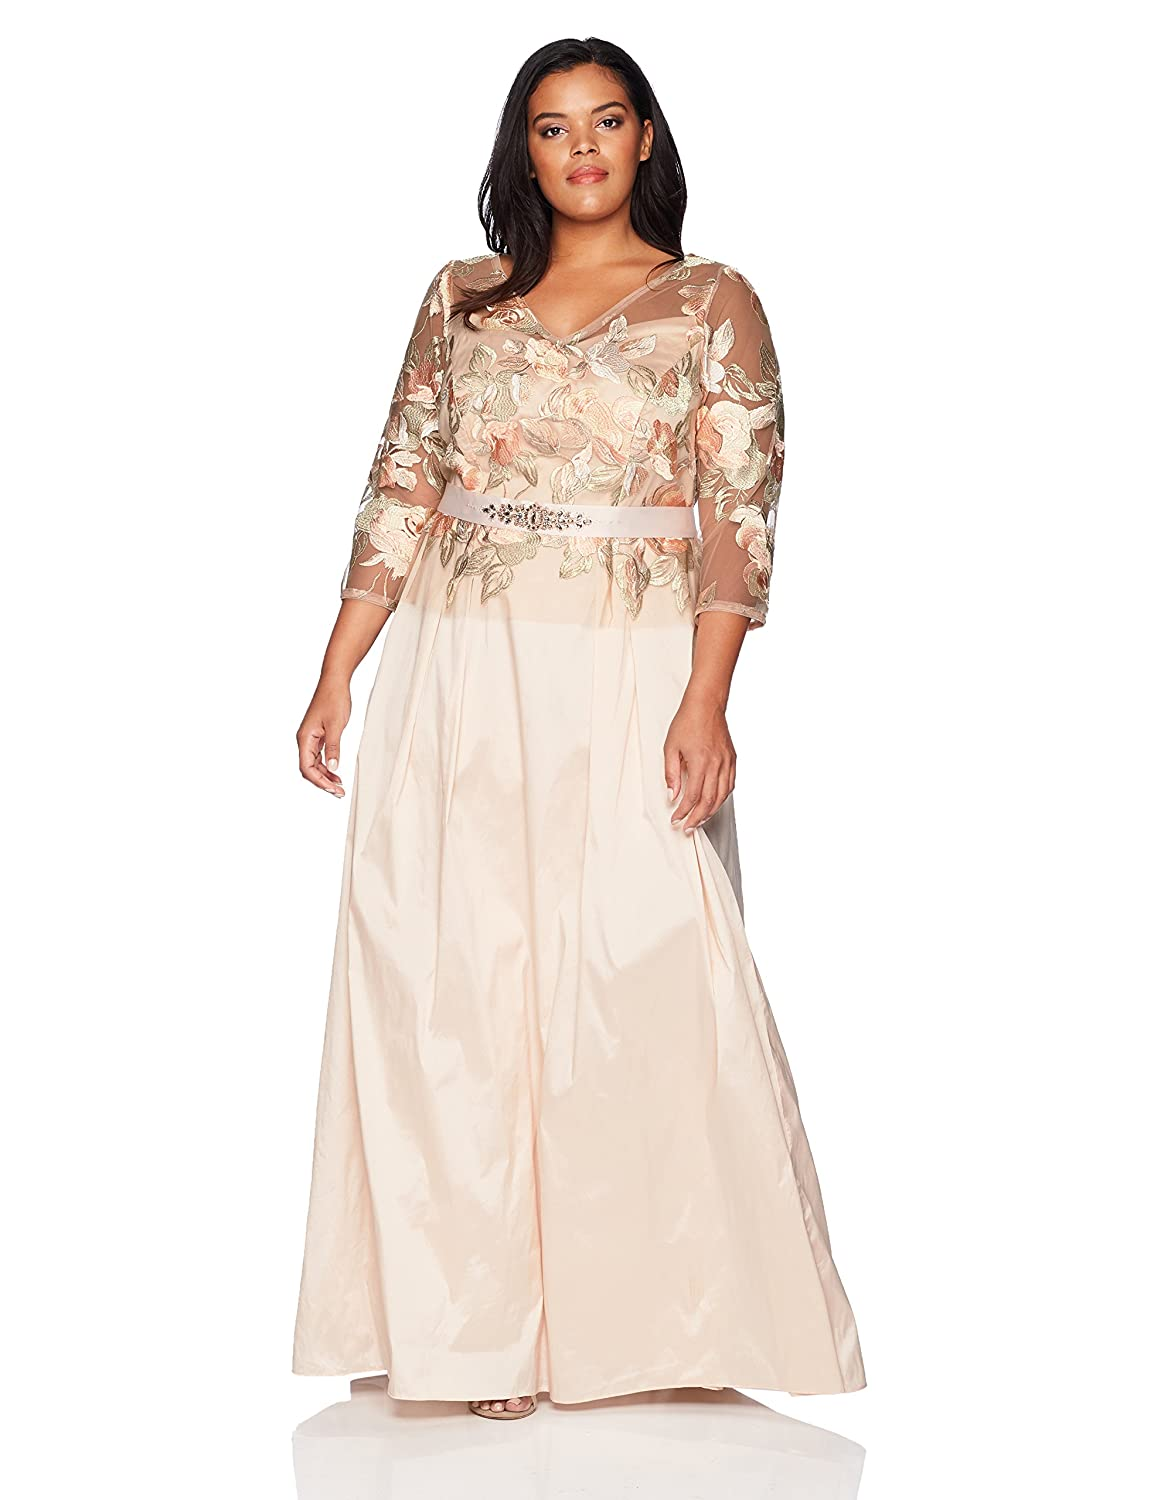 963672bd6 Adrianna Papell Women's Floral Embroidered Long Dress with Taffeta Skirt  Plus Size at Amazon Women's Clothing store: